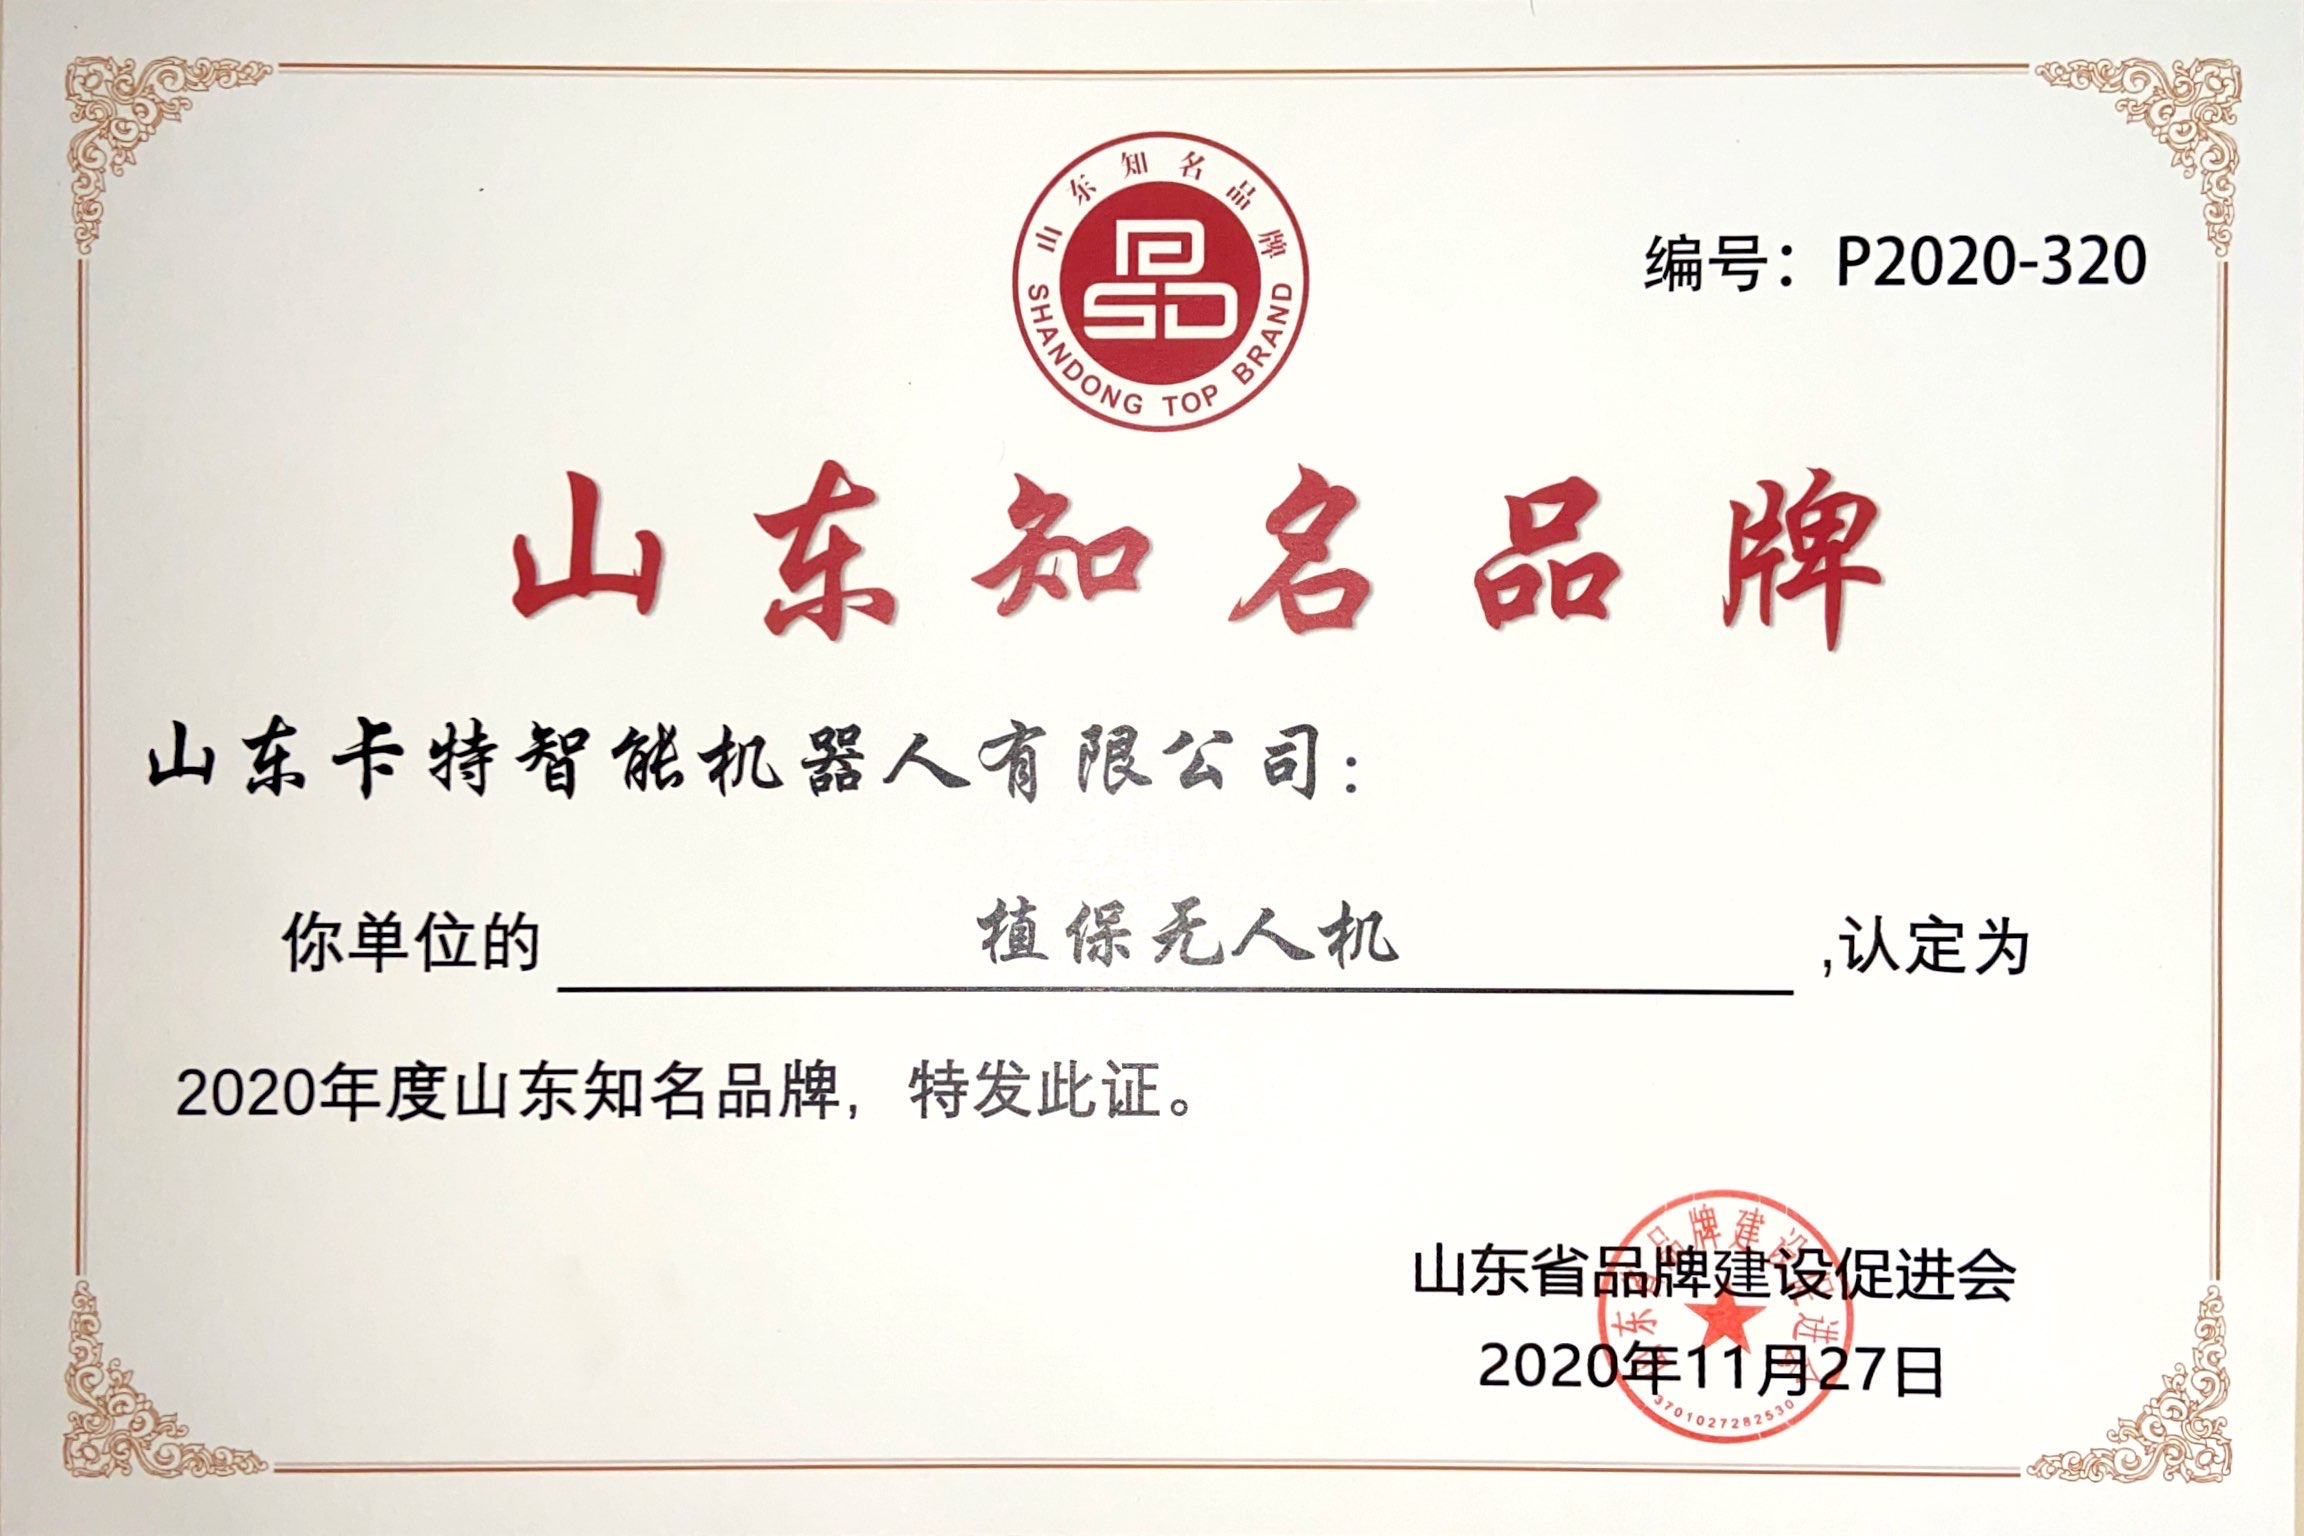 Congratulations To China Coal Group For Being Awarded The 2020 Shandong Famous Brand